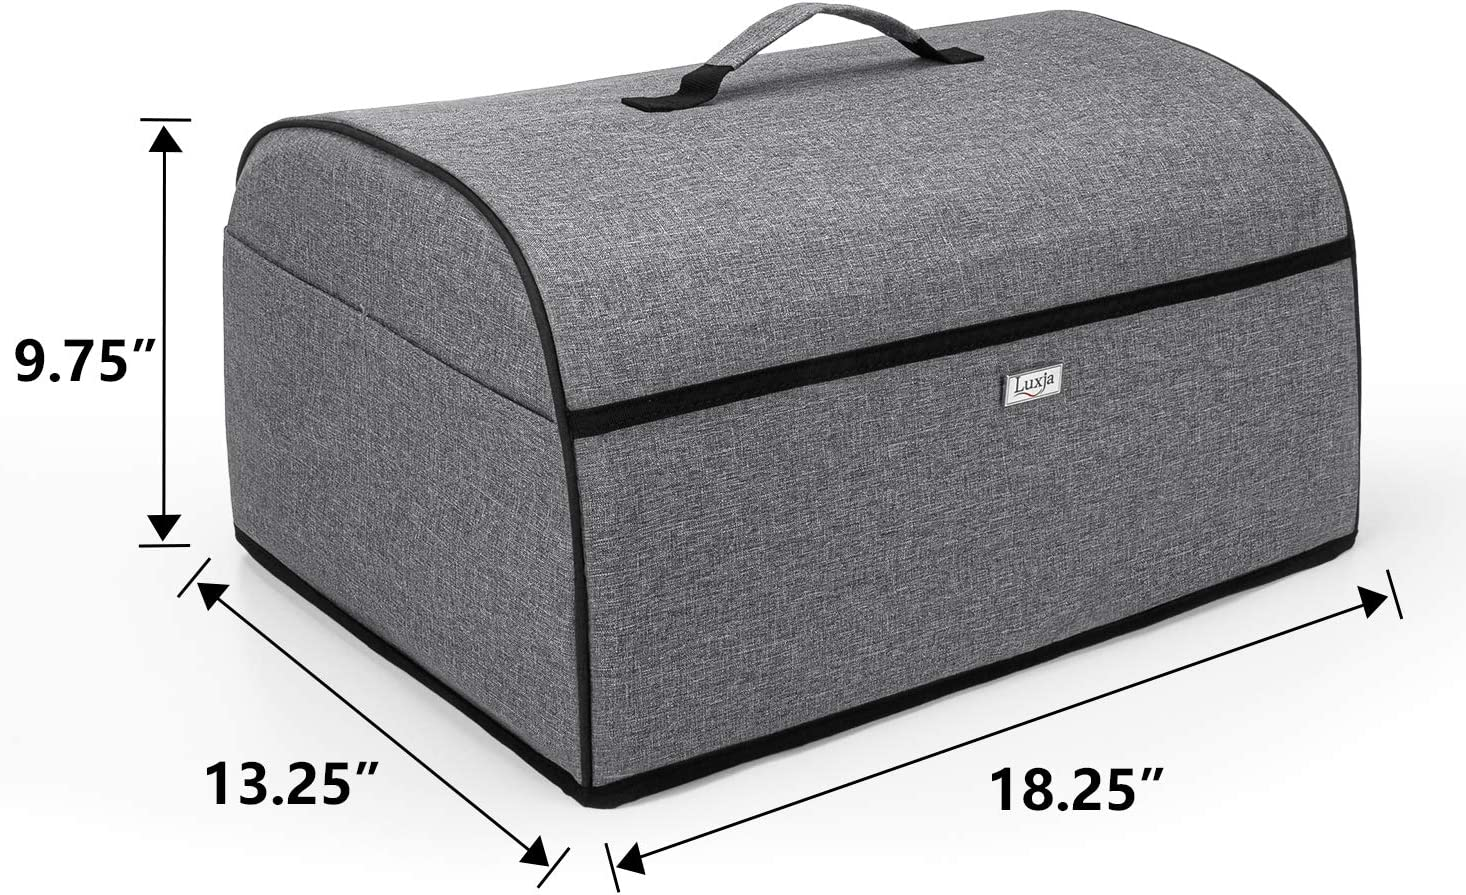 Luxja Toaster Oven Cover Compatible with Hamilton Beach 6-Slice Toaster Oven Gray